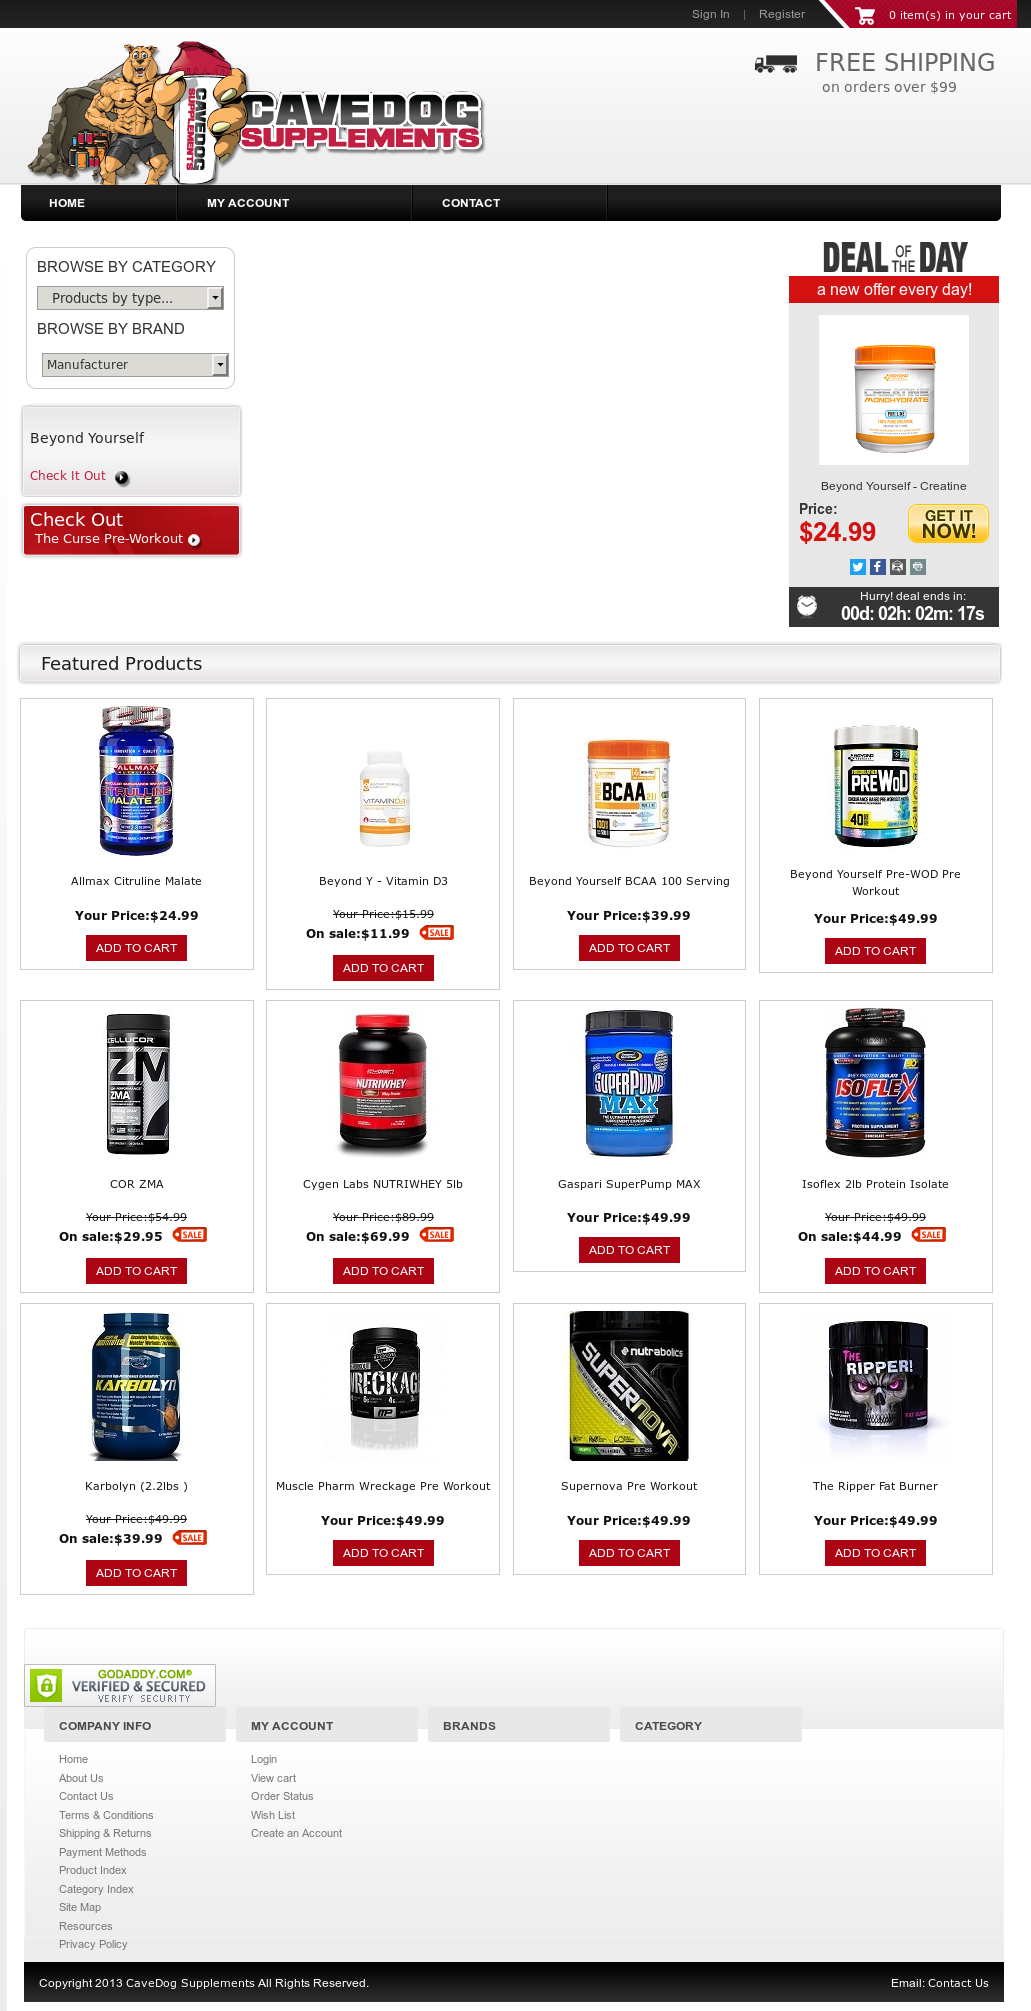 Cavedog Supplements Competitors, Revenue and Employees - Owler